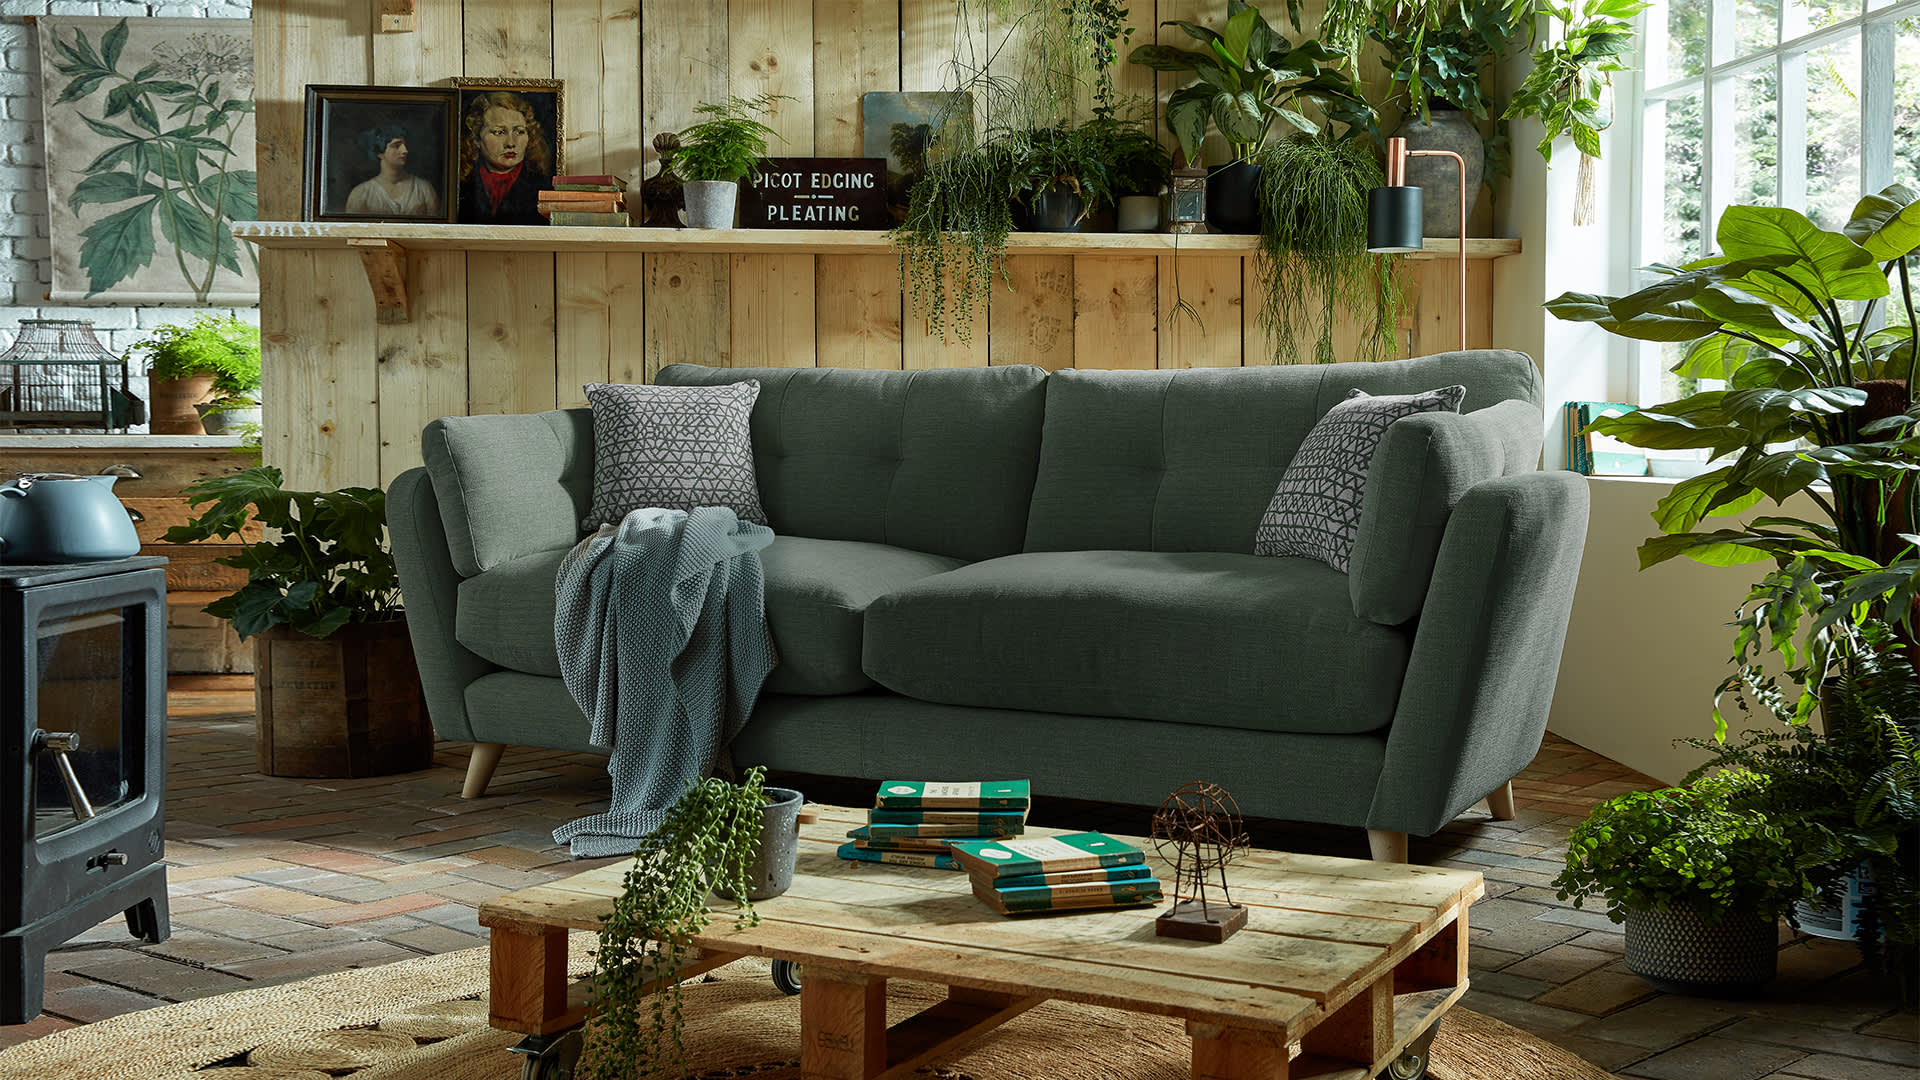 Sofology Pioneer Eco Sofa